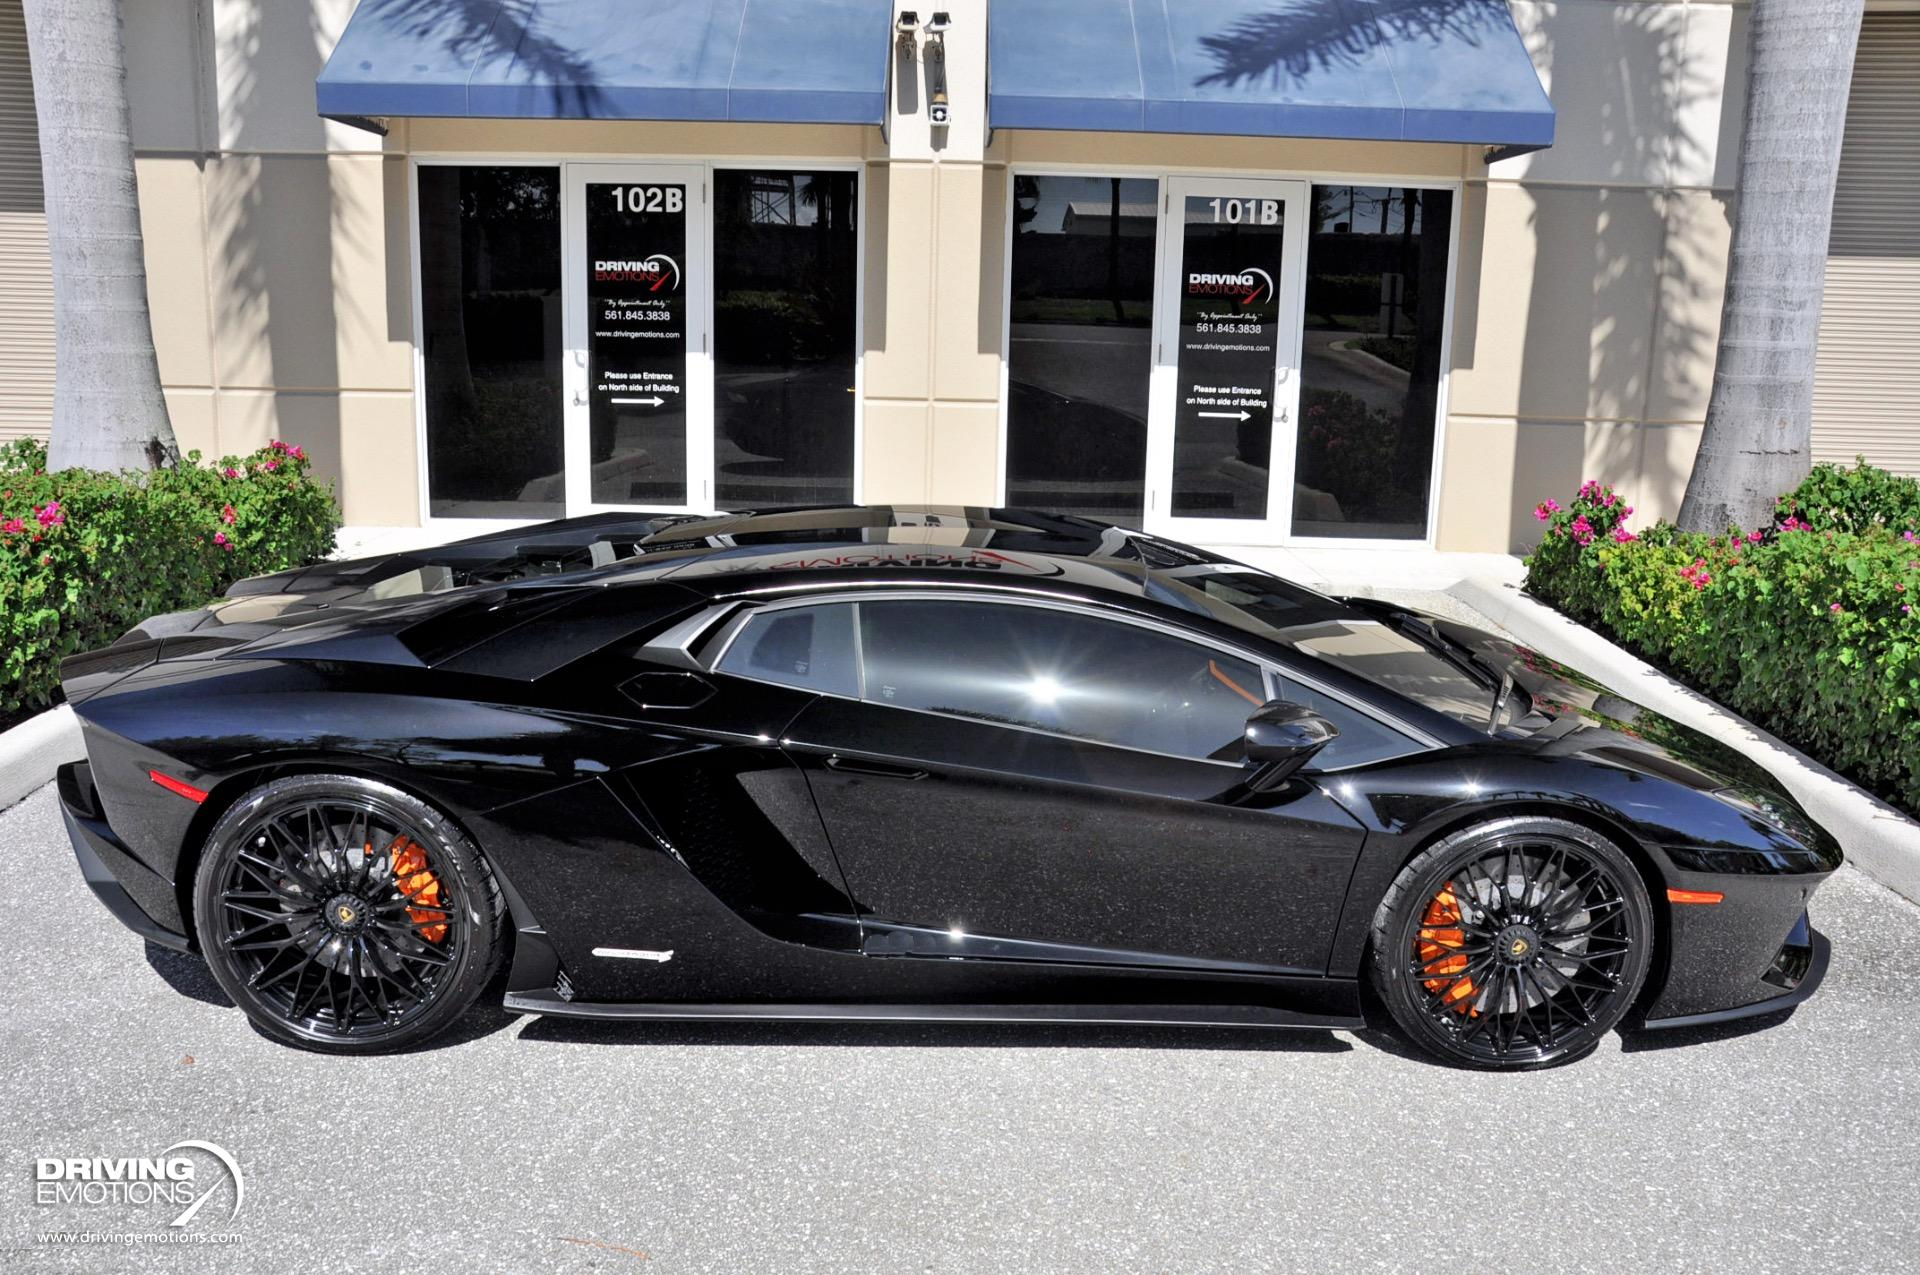 Used 2018 Lamborghini Aventador S LP740-4 Coupe $486k MSRP!! | Lake Park, FL